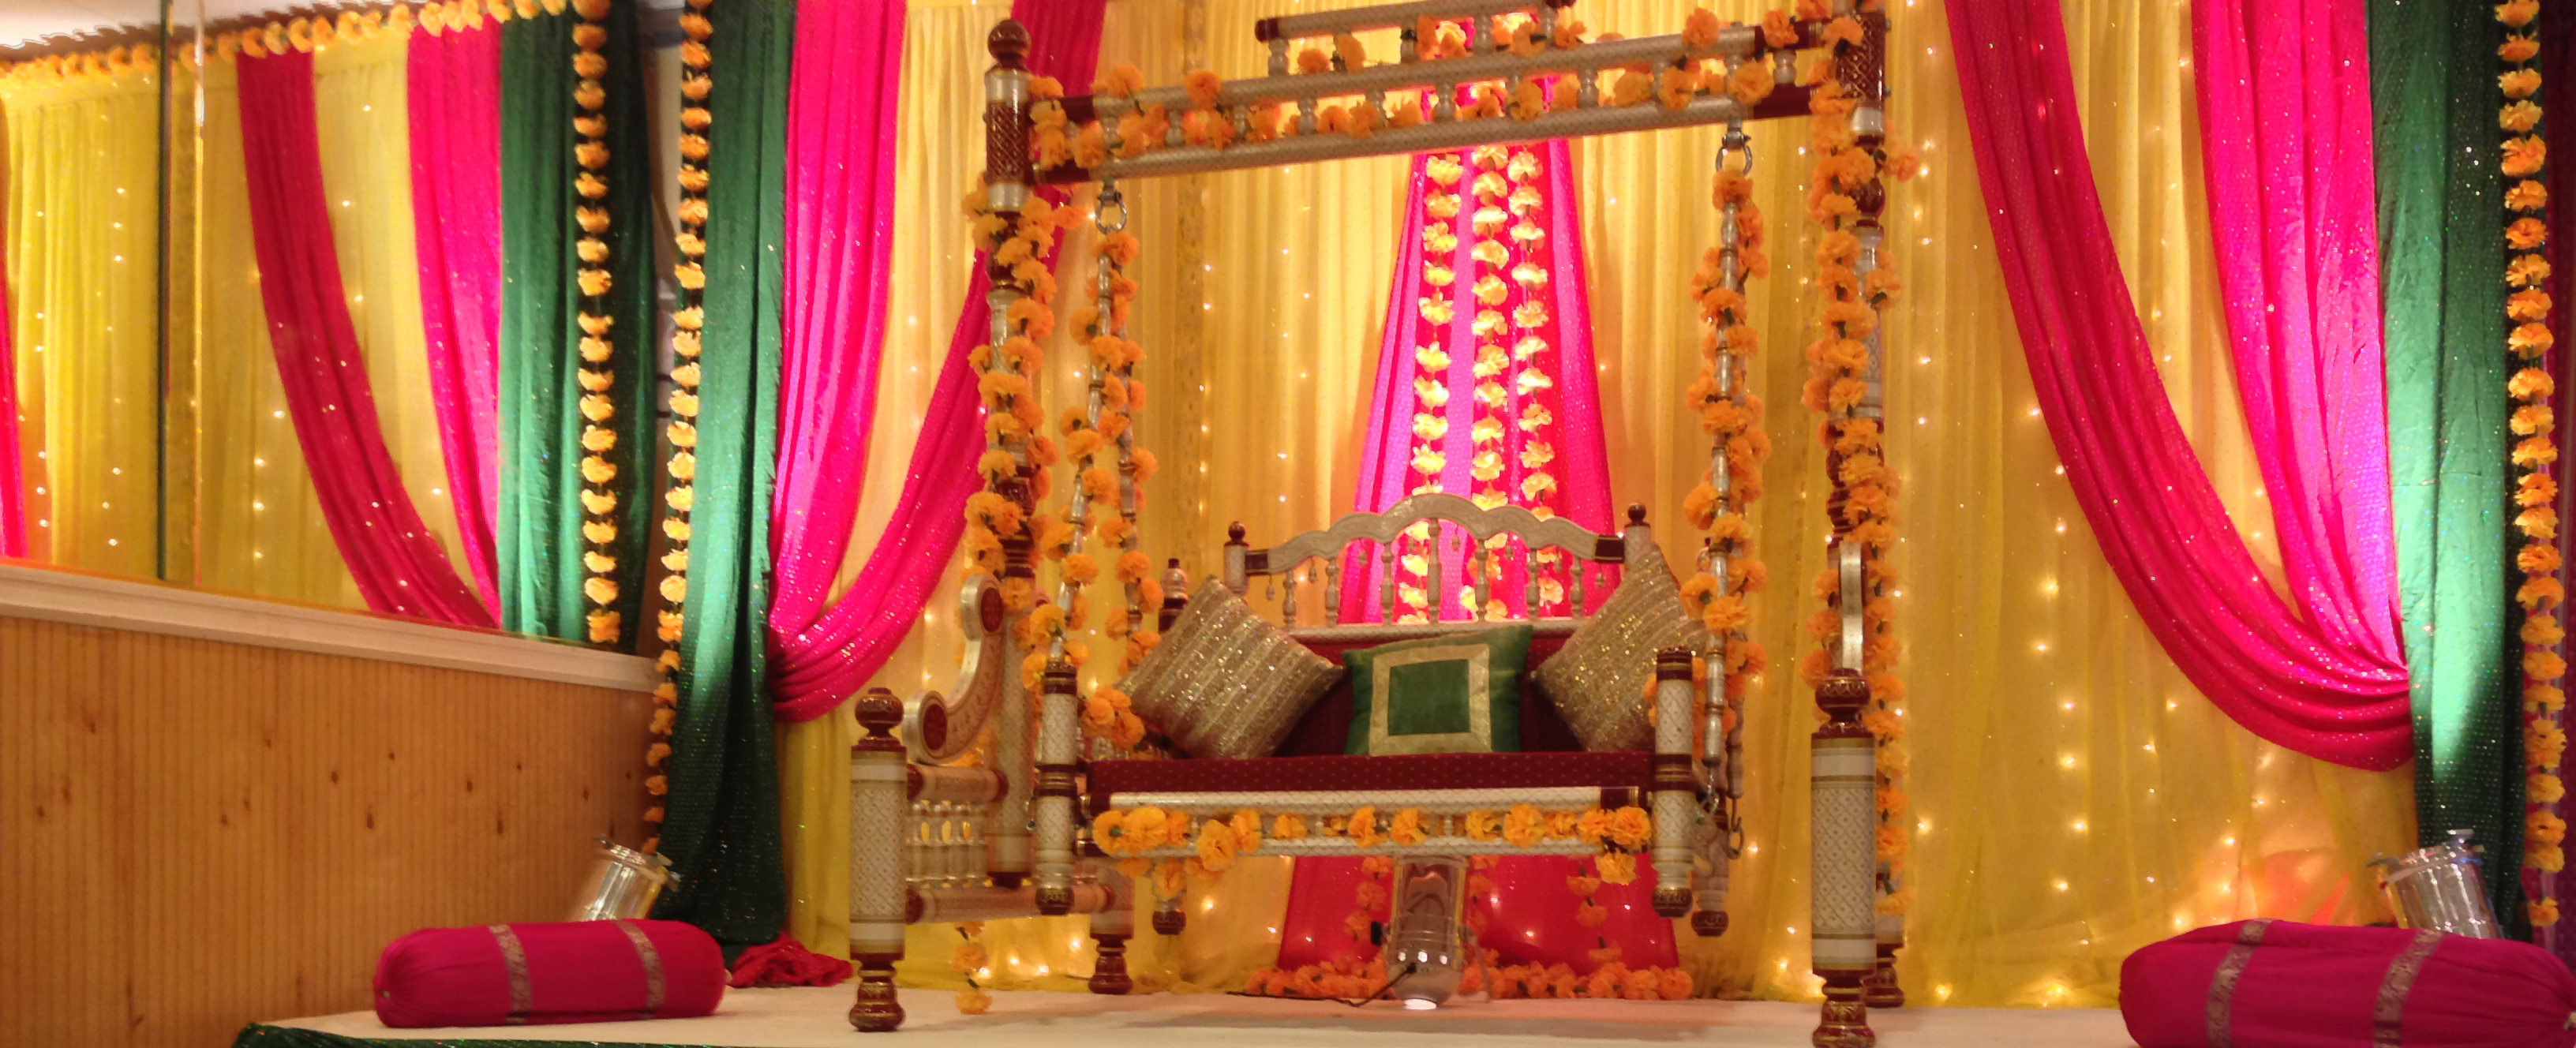 Indian wedding ceremony decor full of bright colored draped linens, florals, and ornate furniture